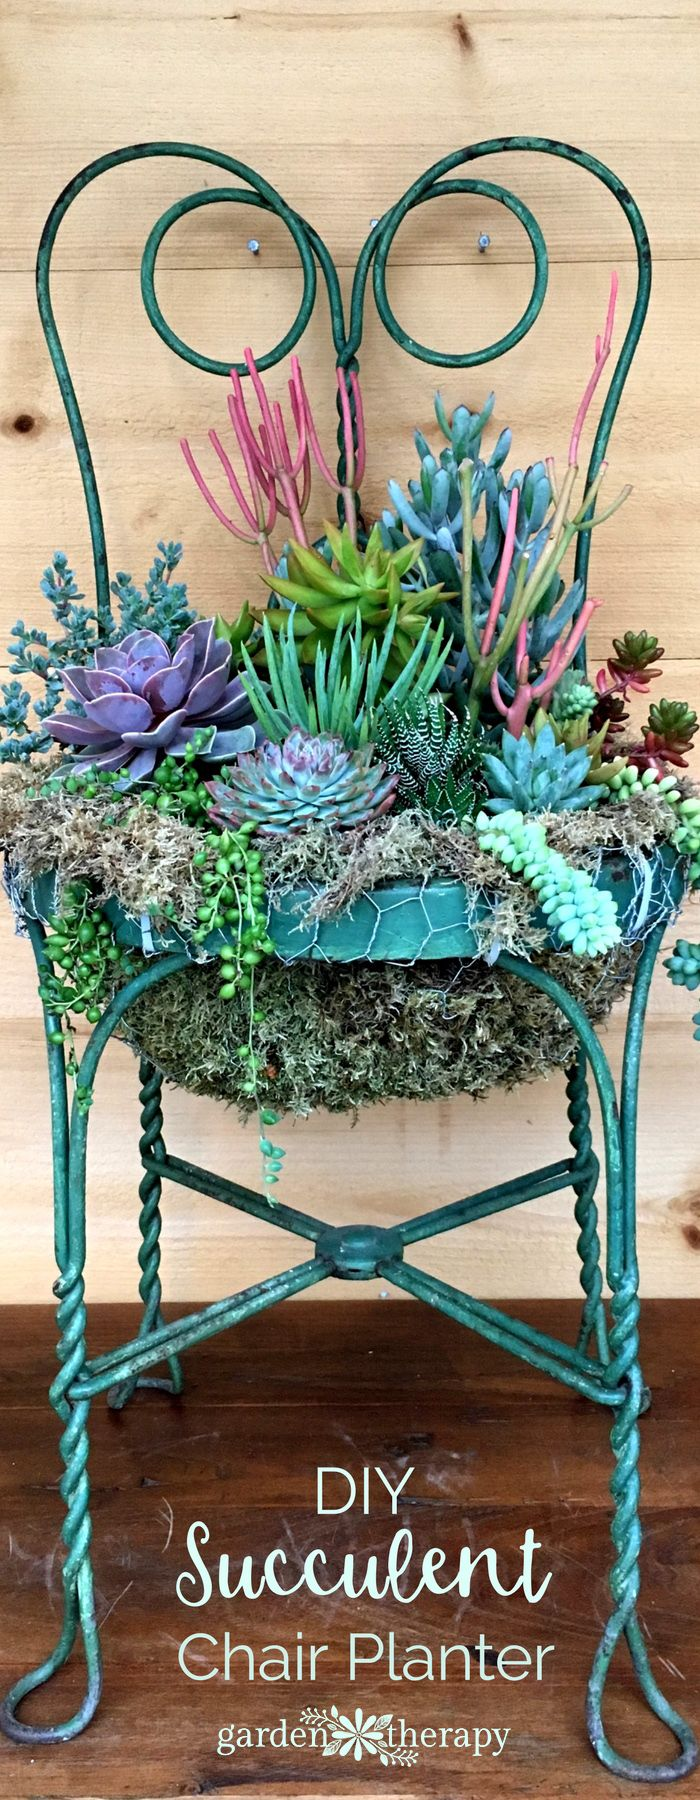 Homemade garden art ideas - See How To Upcycle An Old Chair Into A Beautiful Piece Of Garden Art For Any